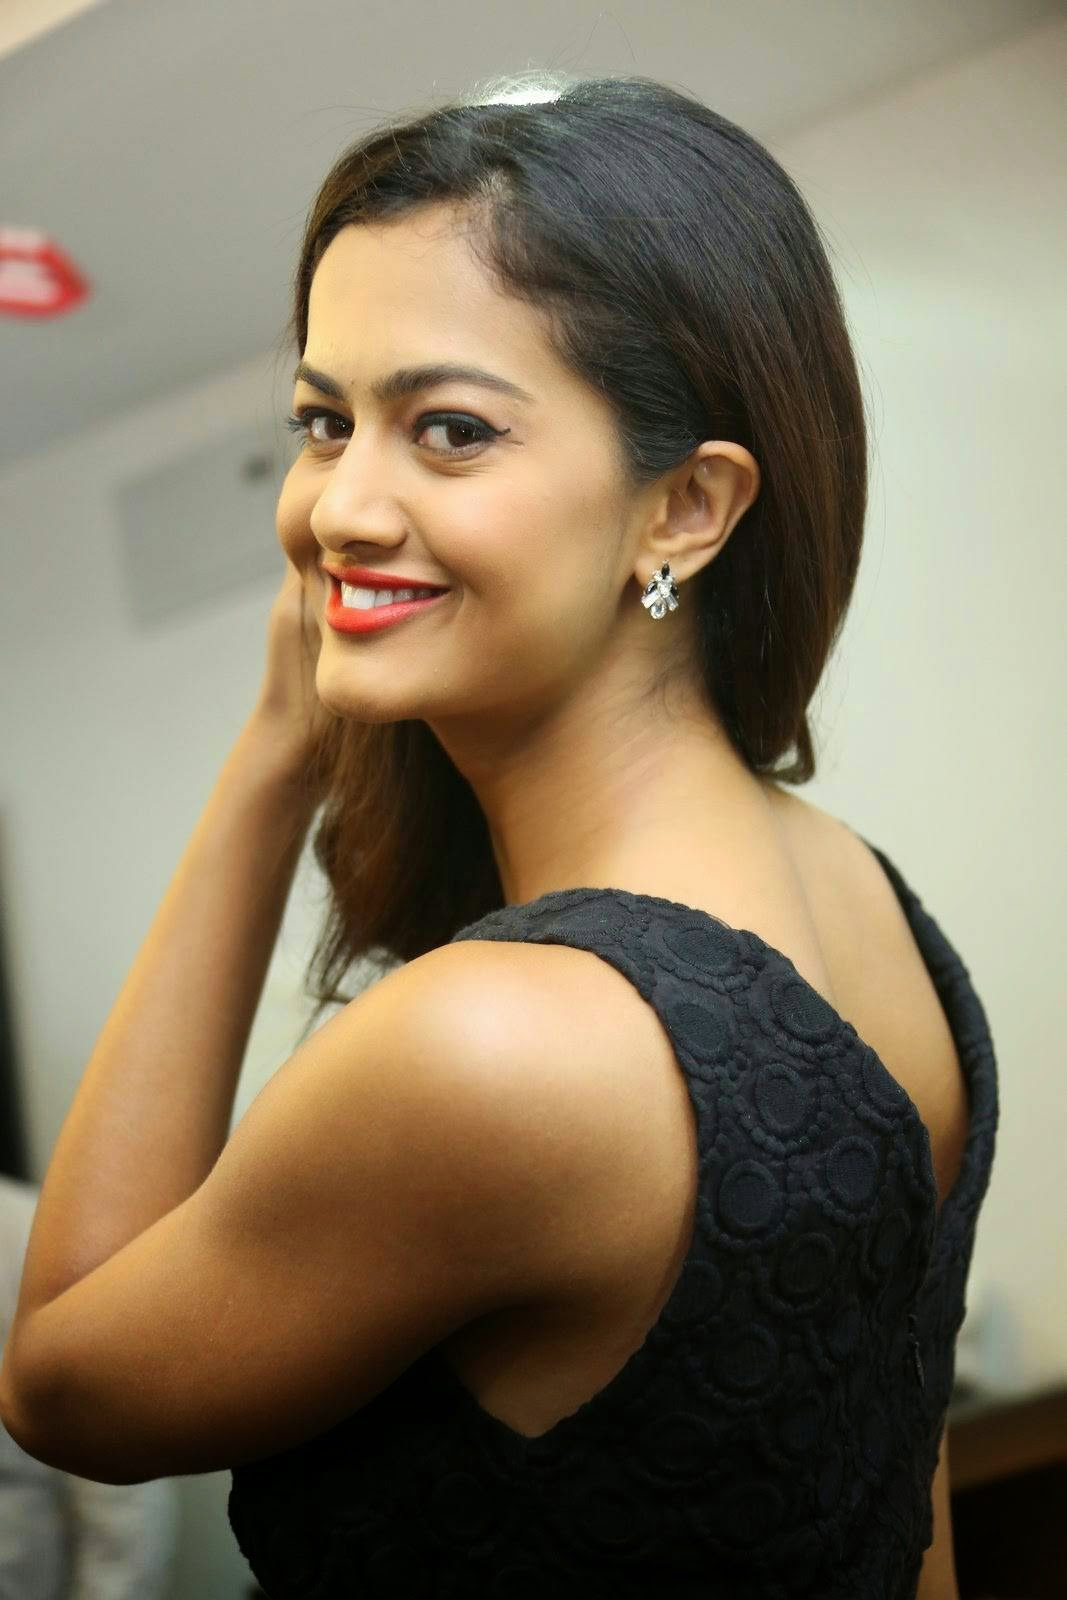 Shubra Aiyappa Latest Stills, Shubra Aiyappa Sexy Hot Figure images in Black Dress